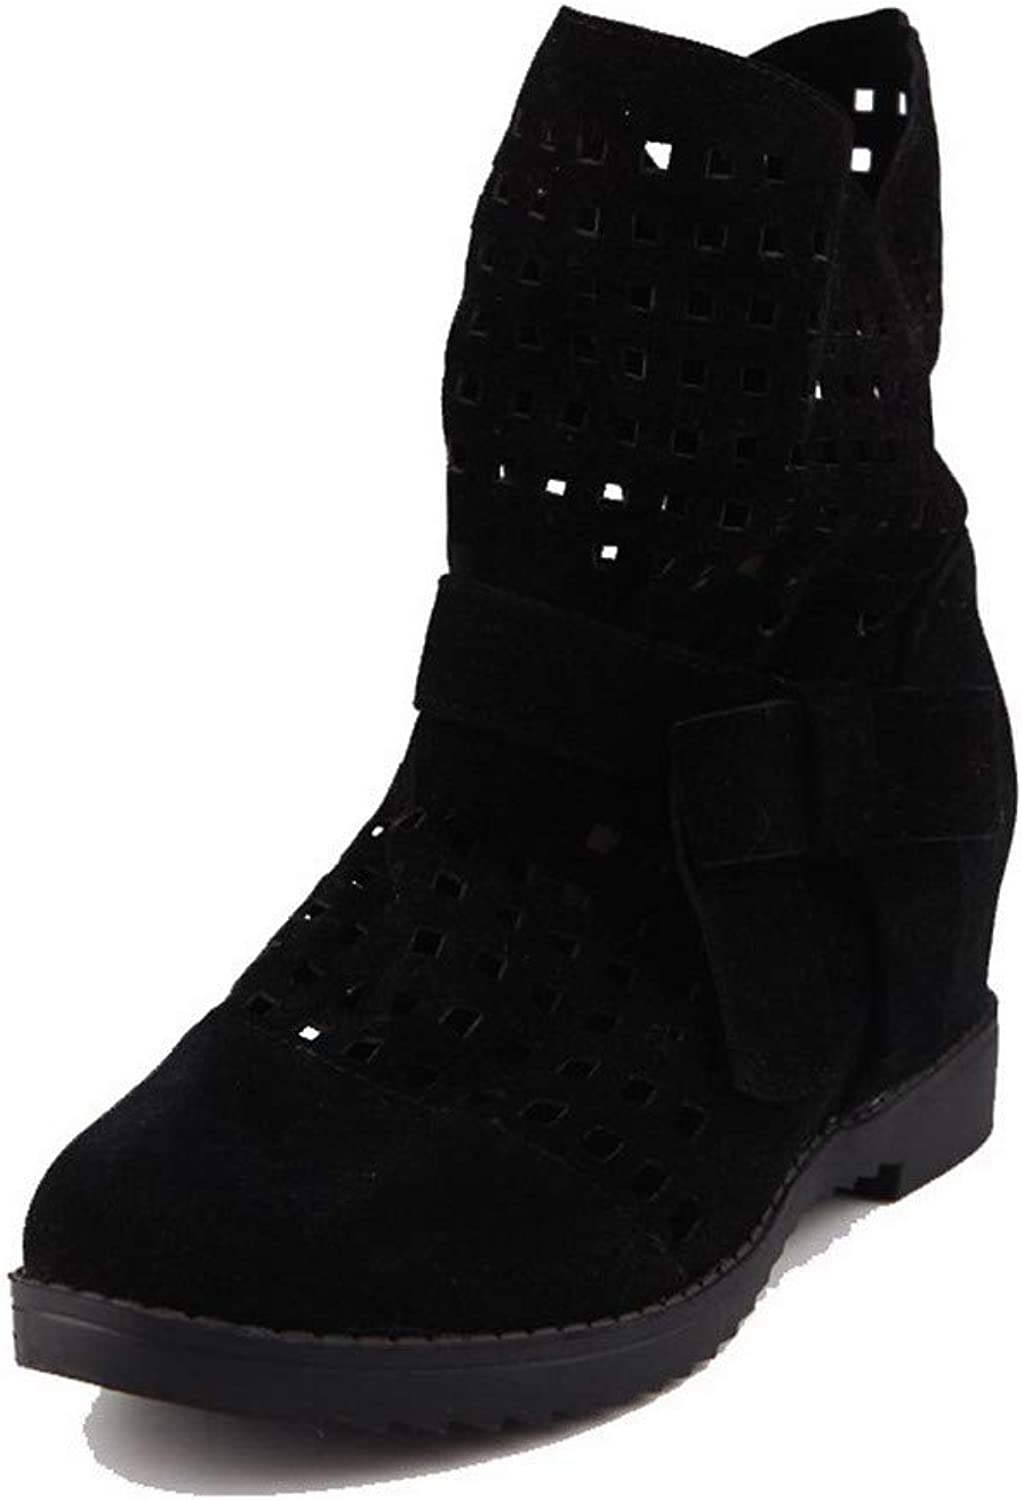 AllhqFashion Women's Frosted Low-Top Solid Pull-On Kitten-Heels Boots, FBUXD025208